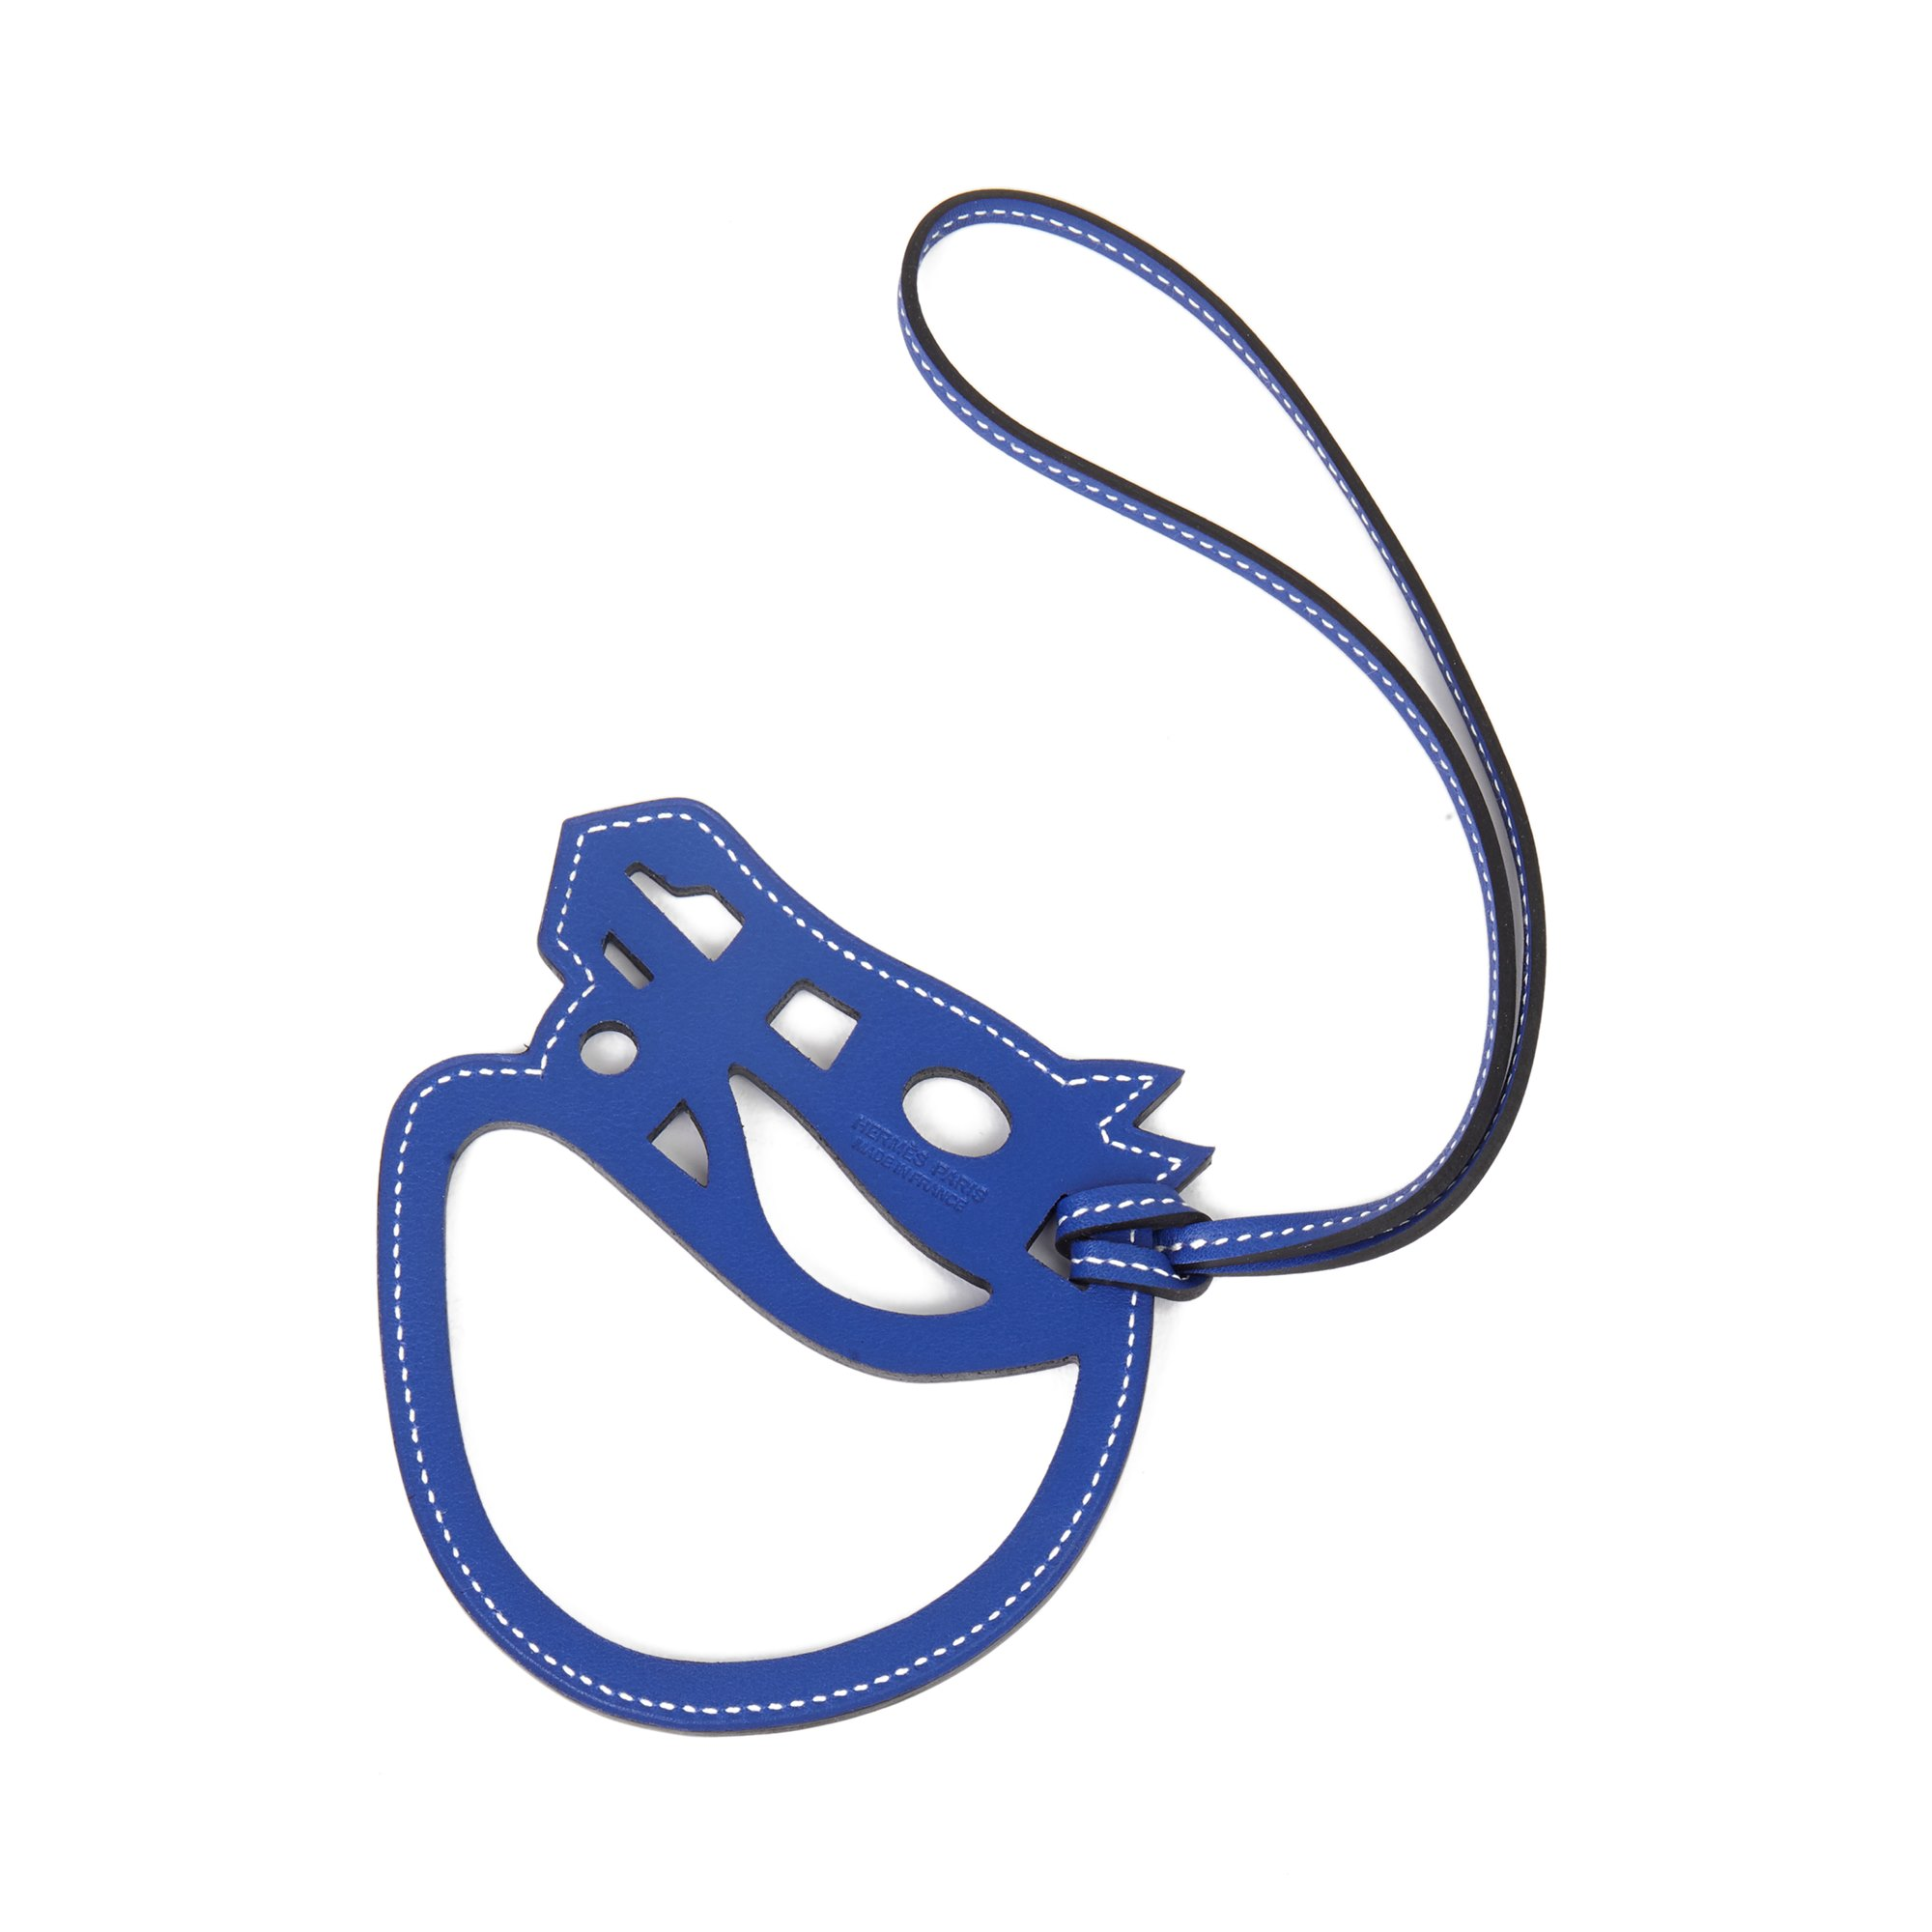 Hermès Bleu Electric Swift Leather Paddock Cheval Charm